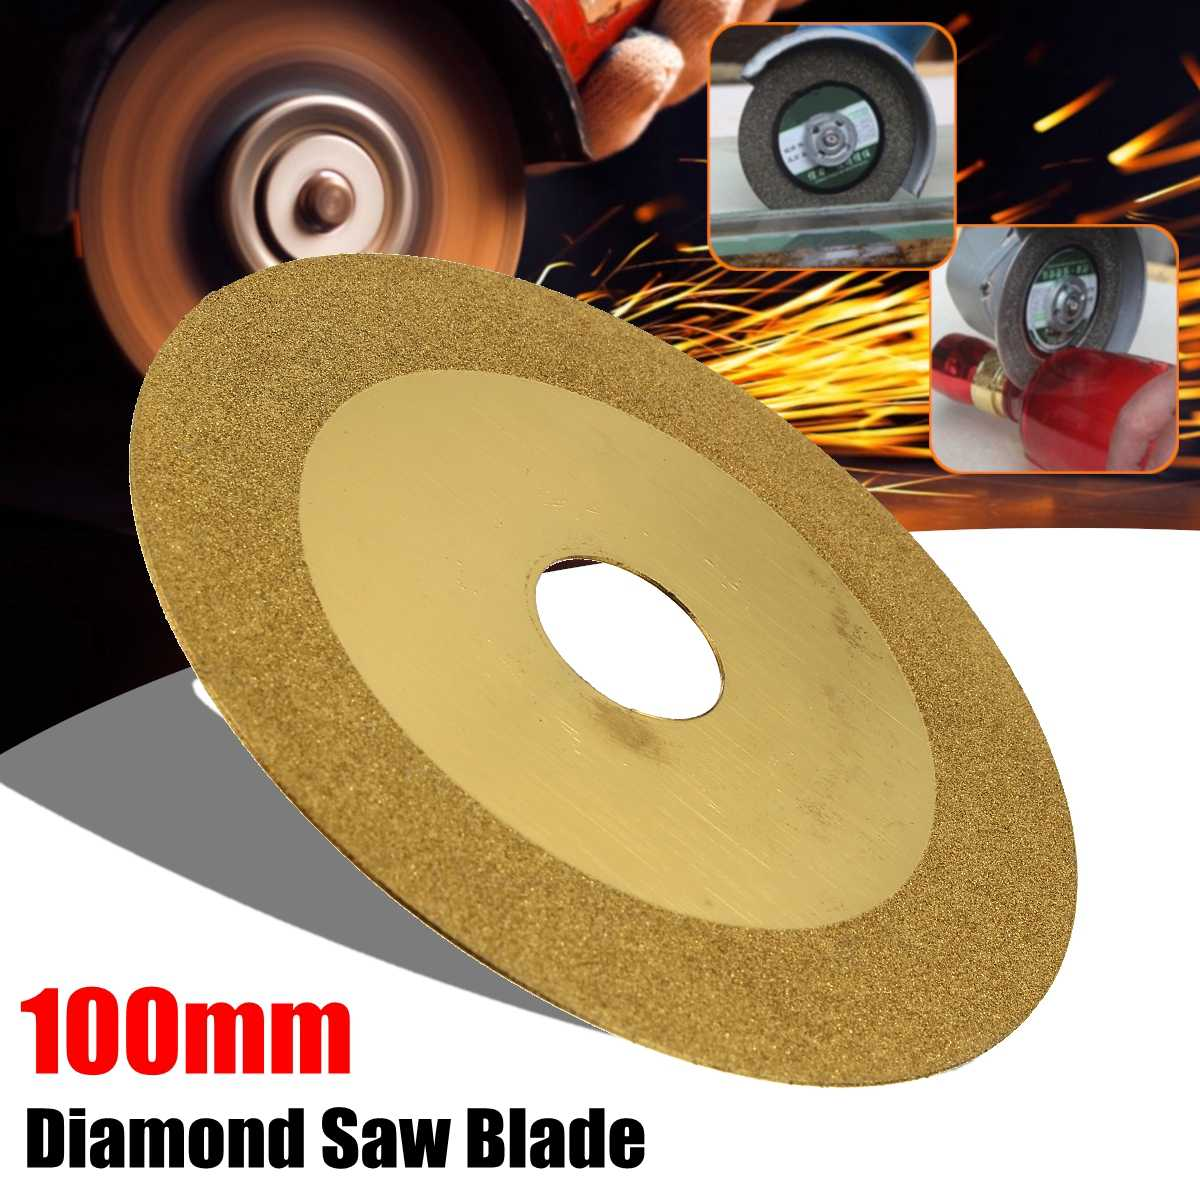 100x20mm Diamond Saw Blades Wheel Cutting Discs & Drill Bit For Dremel Rotary Tool Glass Metal Glass Stone